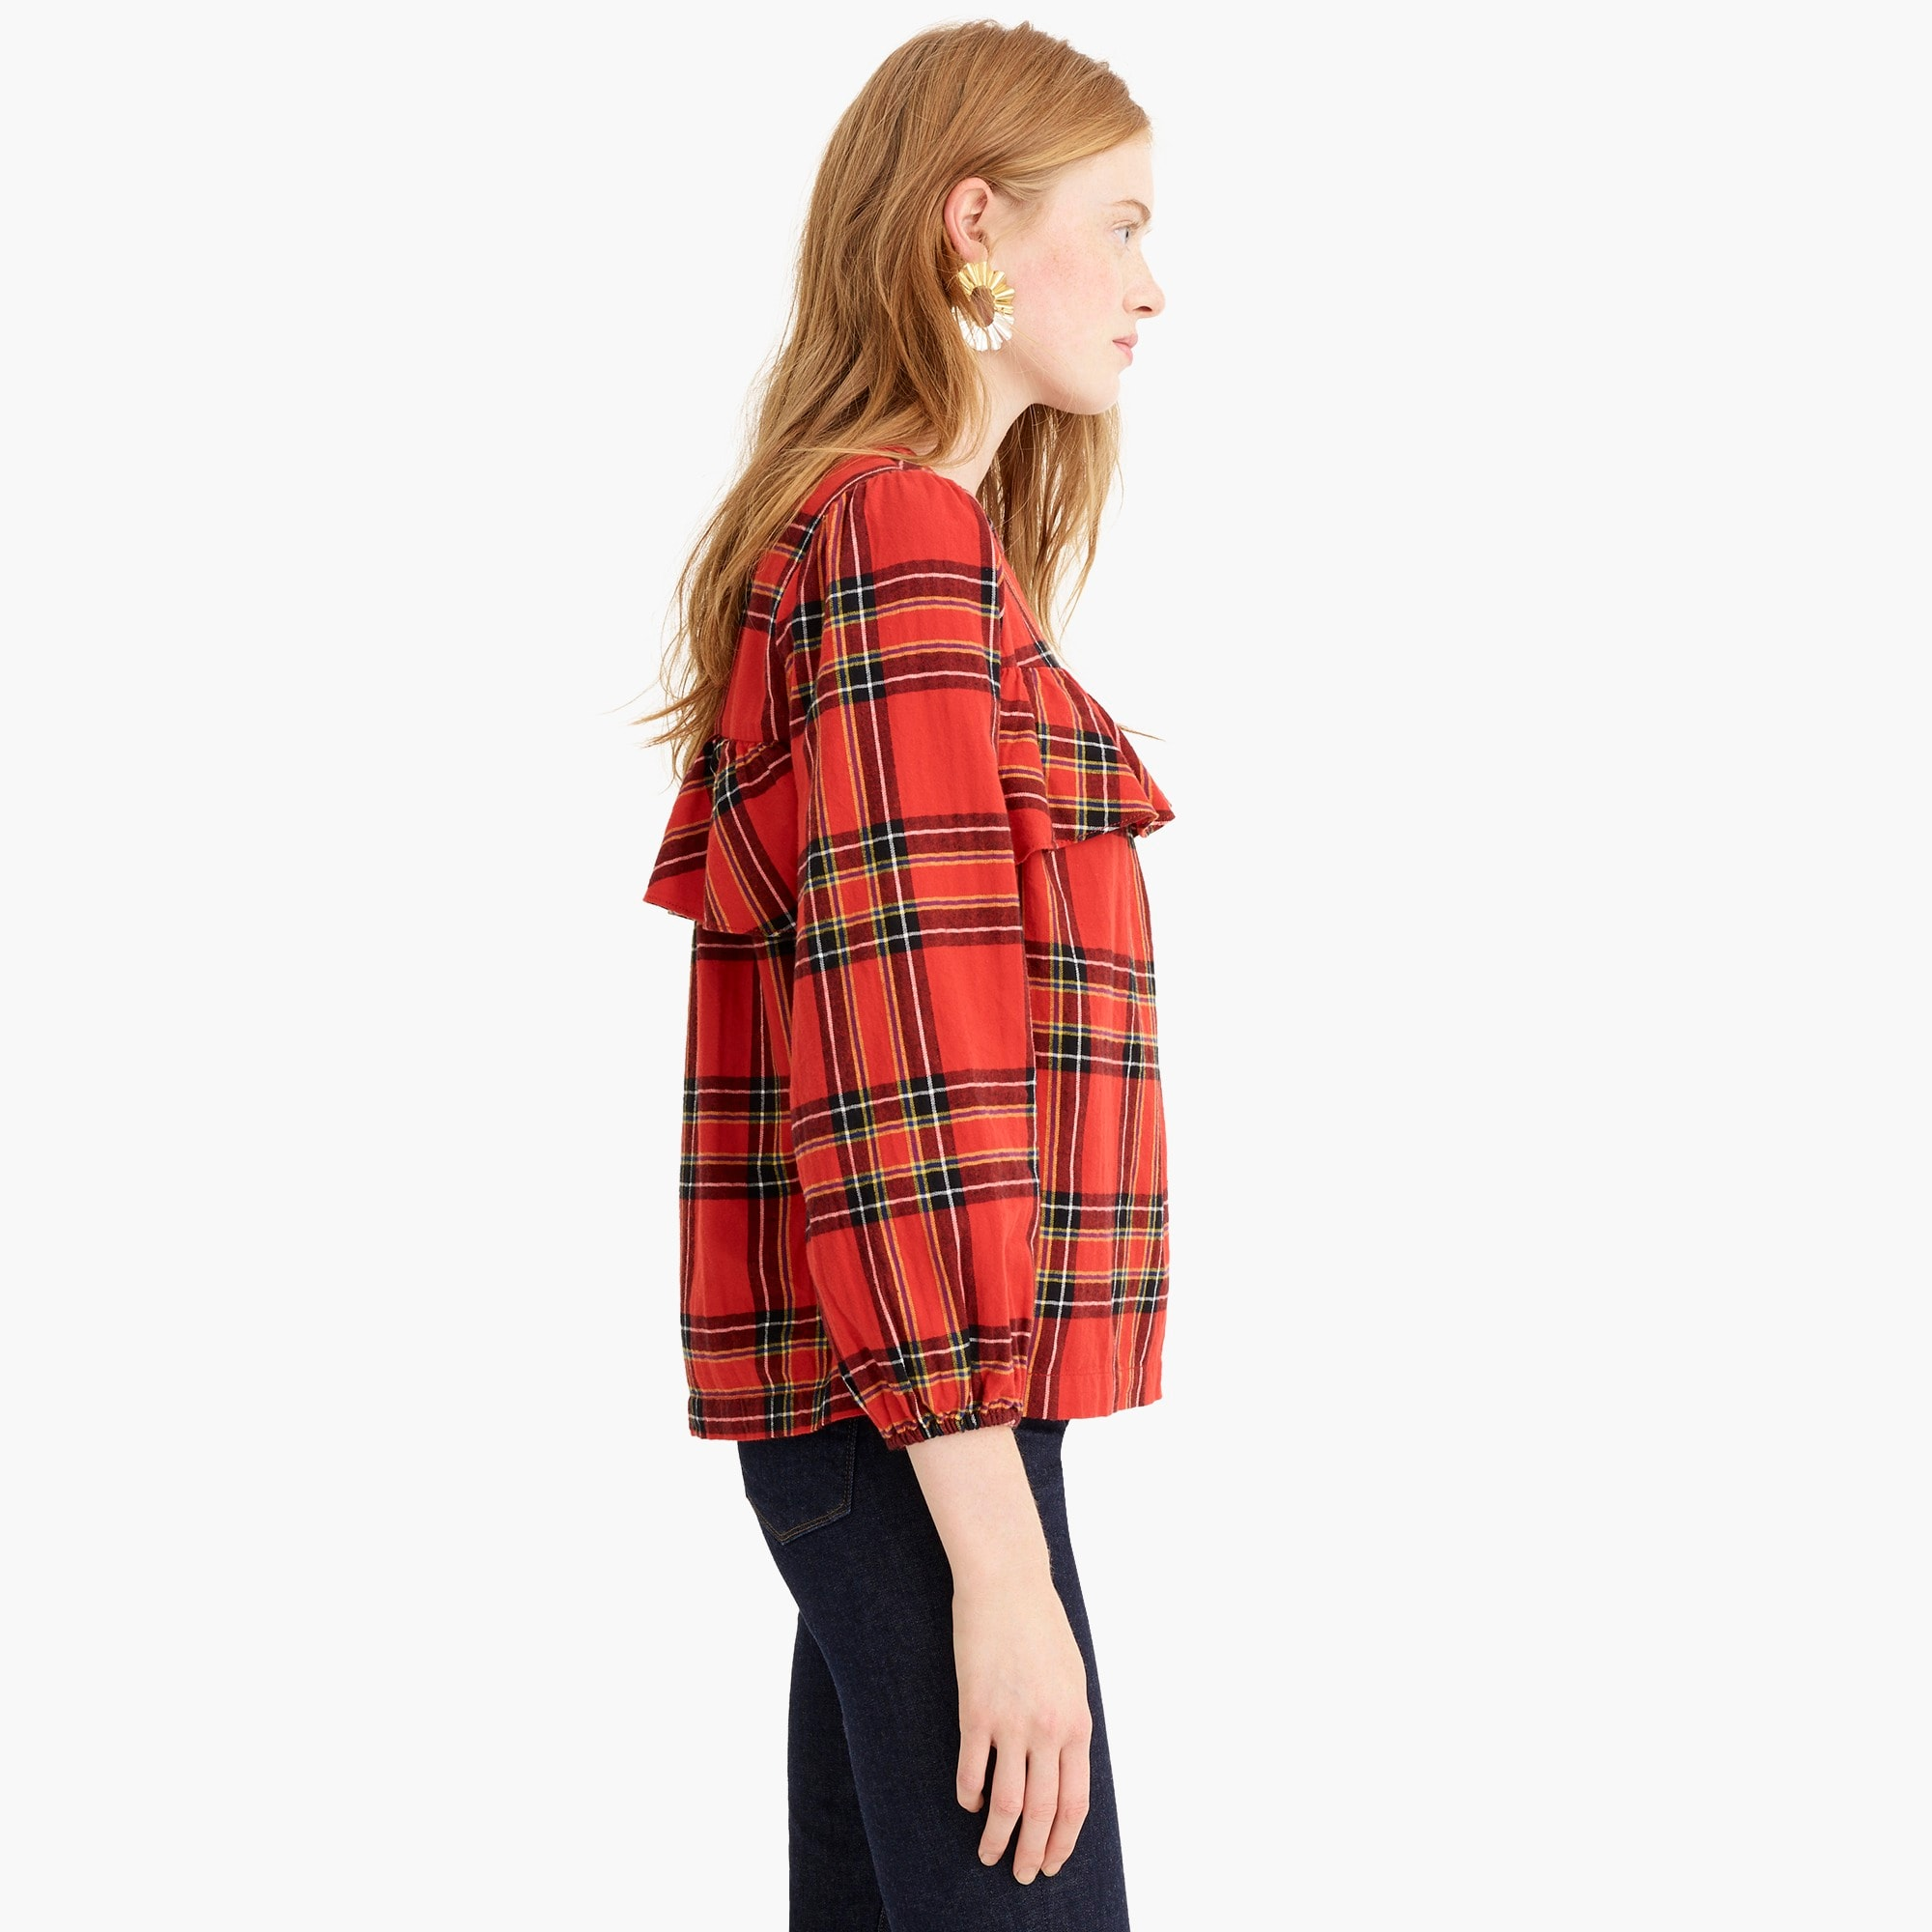 Ruffle top in festive plaid